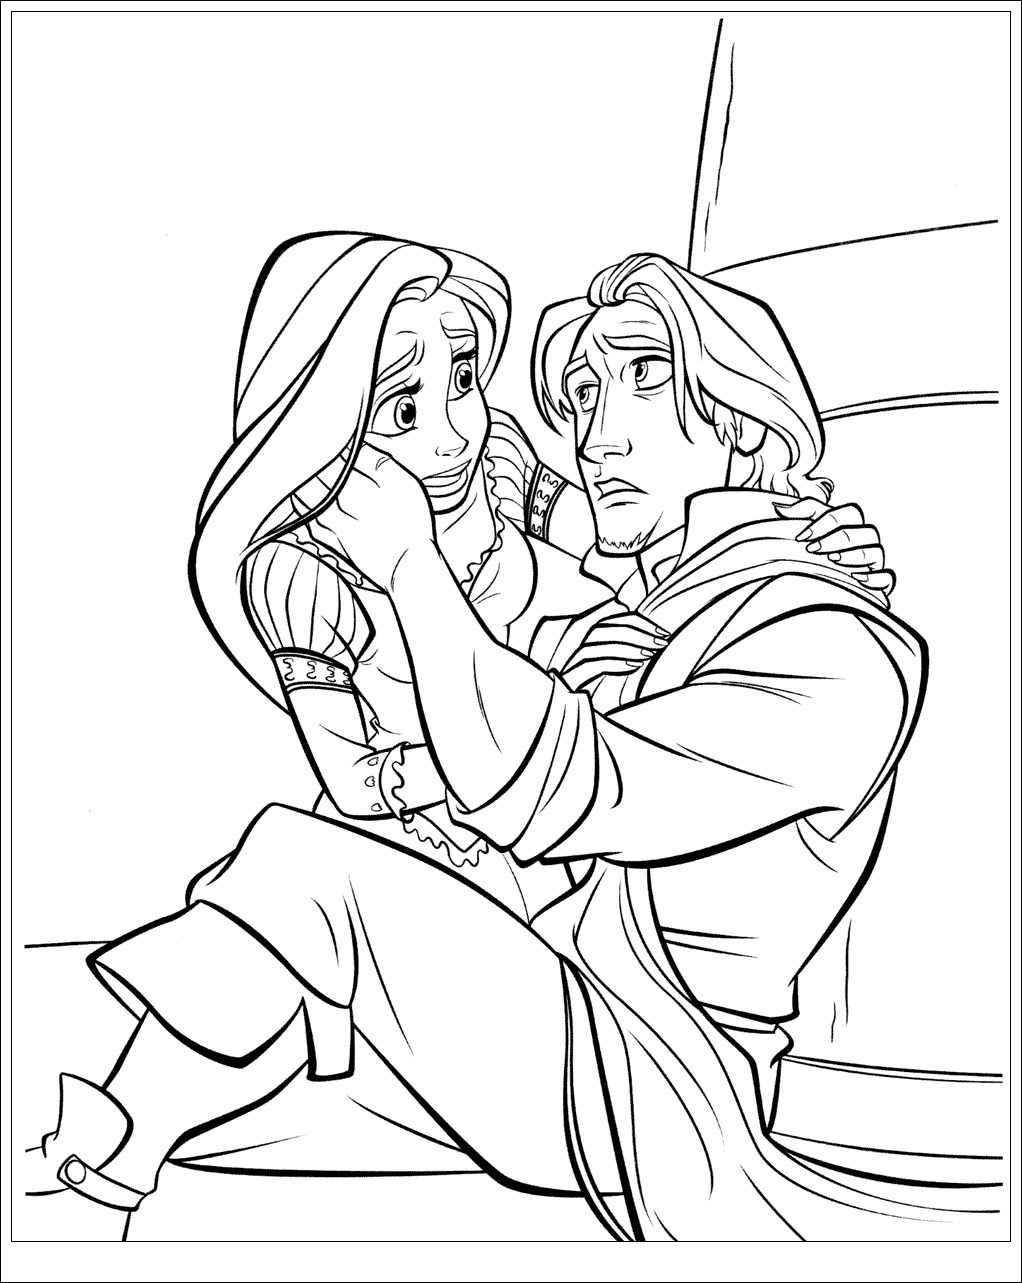 disney tangled coloring pages printable | Coloring Tangled ...